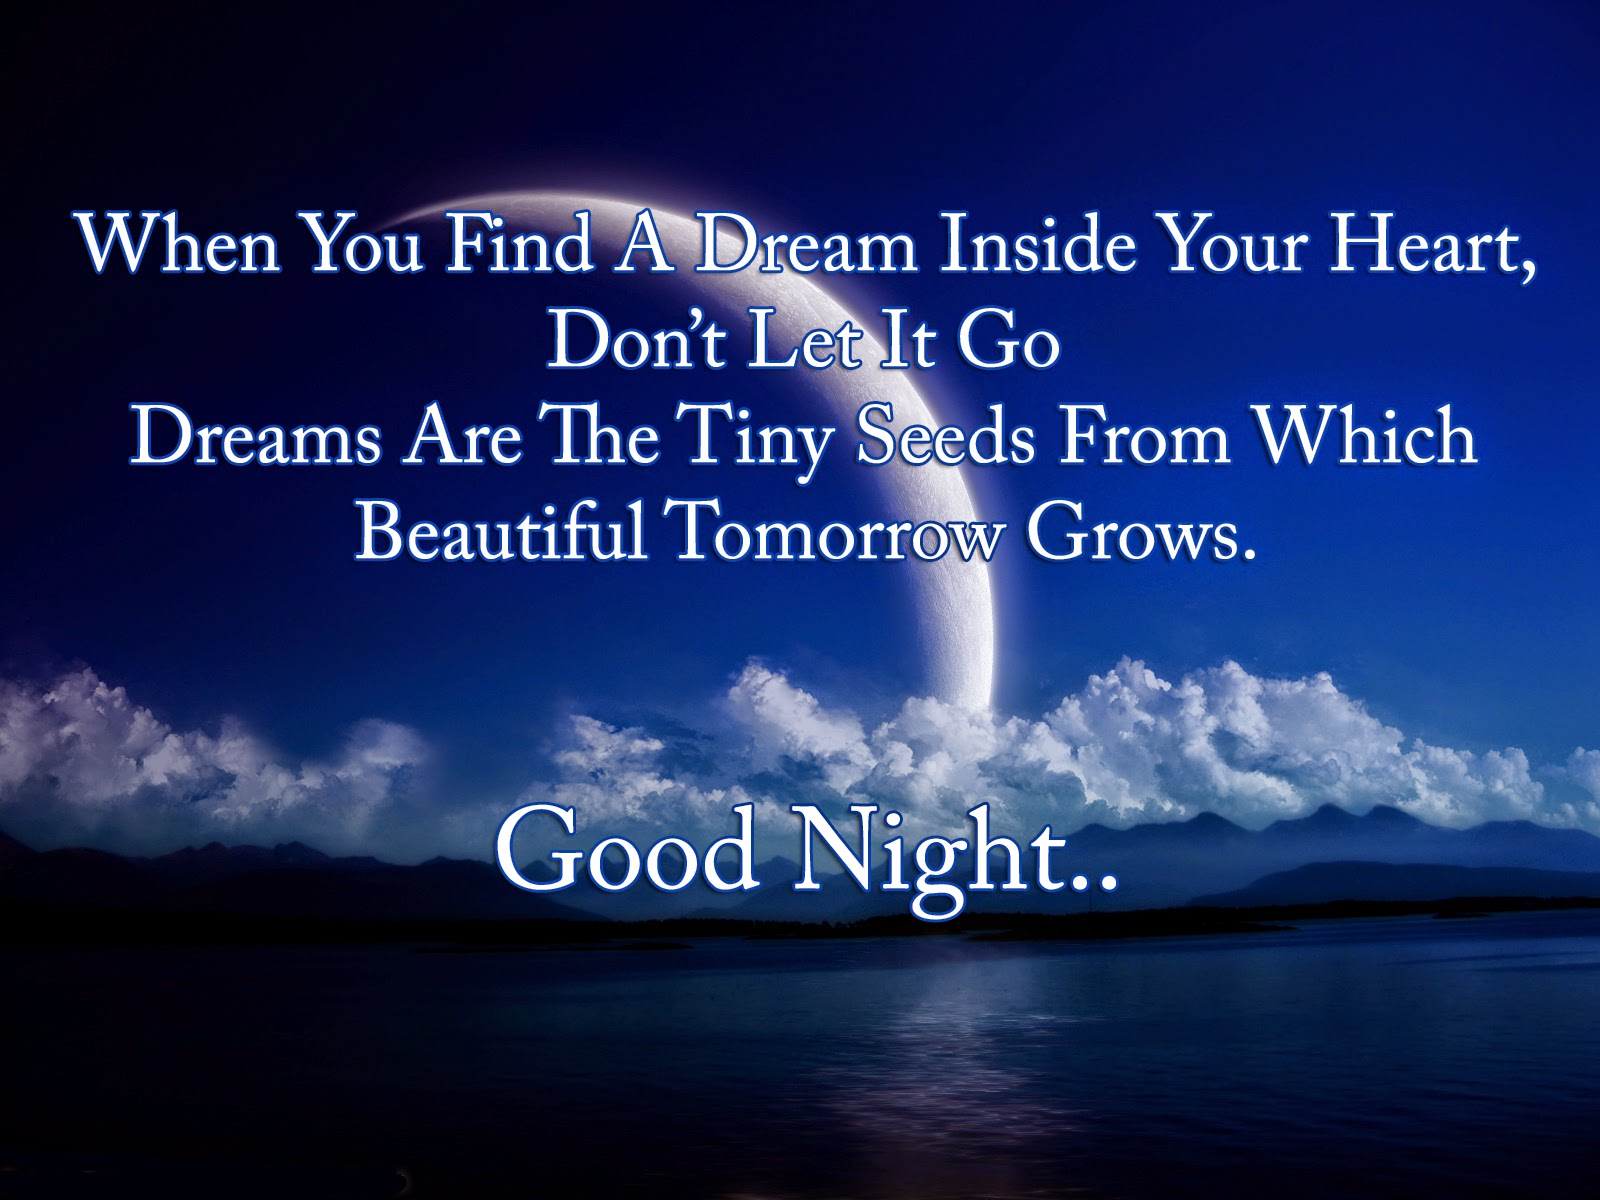 famous good night love quotes greeting photos - This Blog